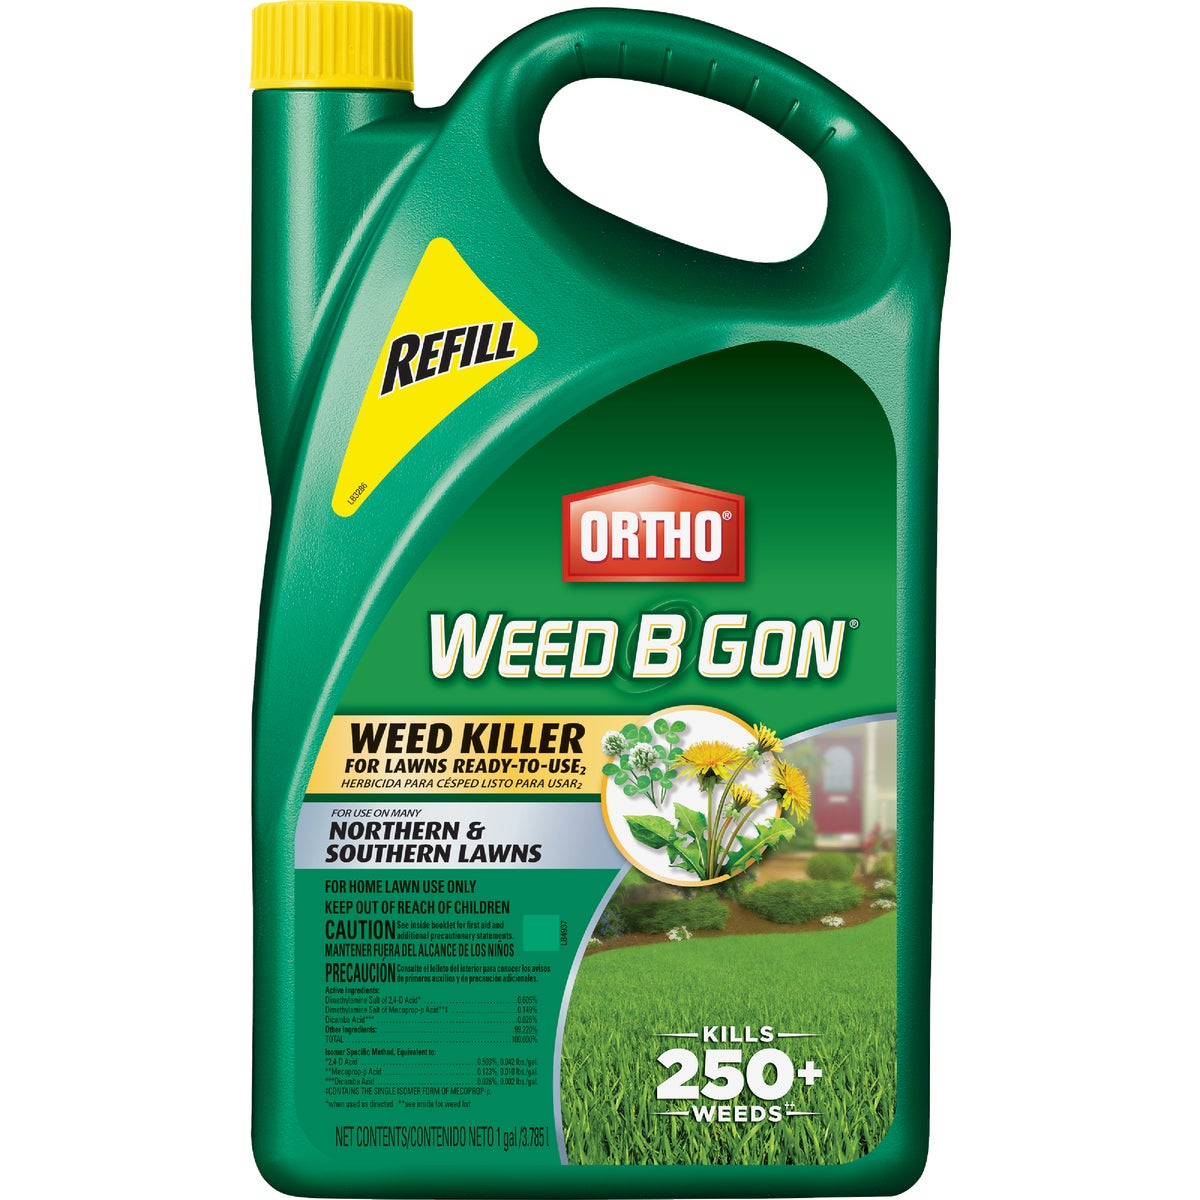 1.33GAL REFIL WEED B GON - 0471010 by Scotts Company